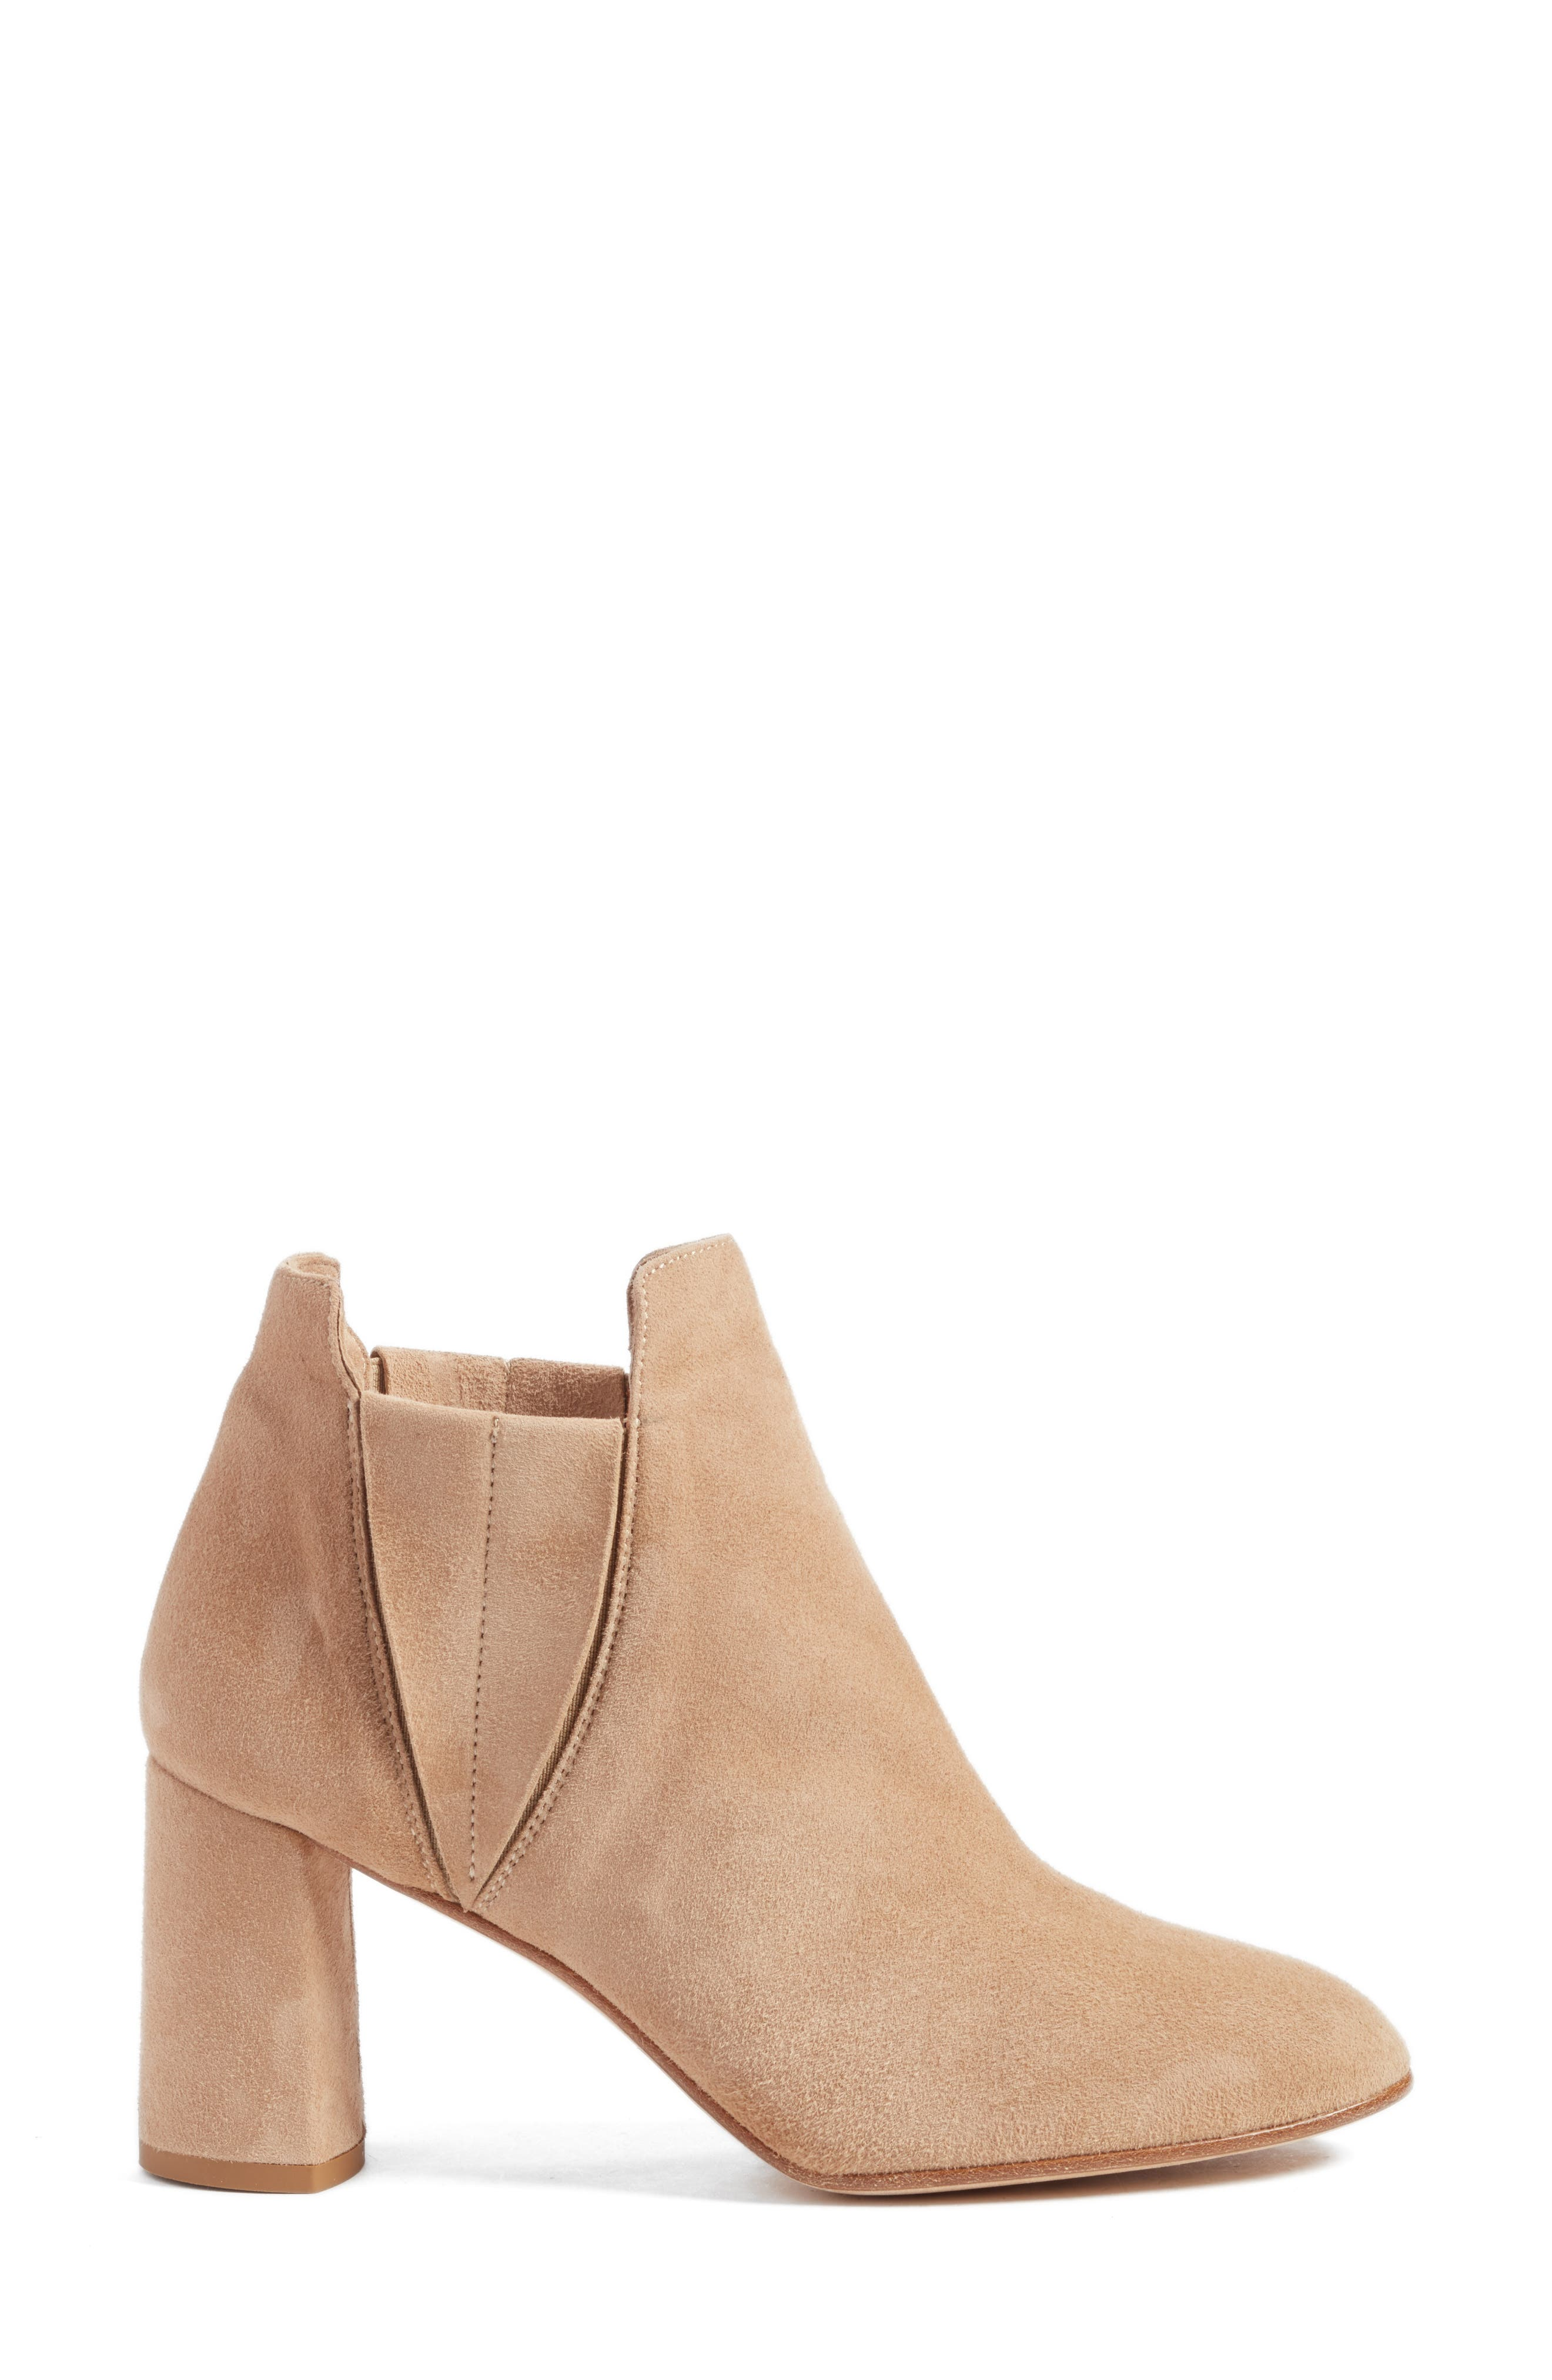 Nadina Chelsea Bootie,                             Alternate thumbnail 3, color,                             Travertine